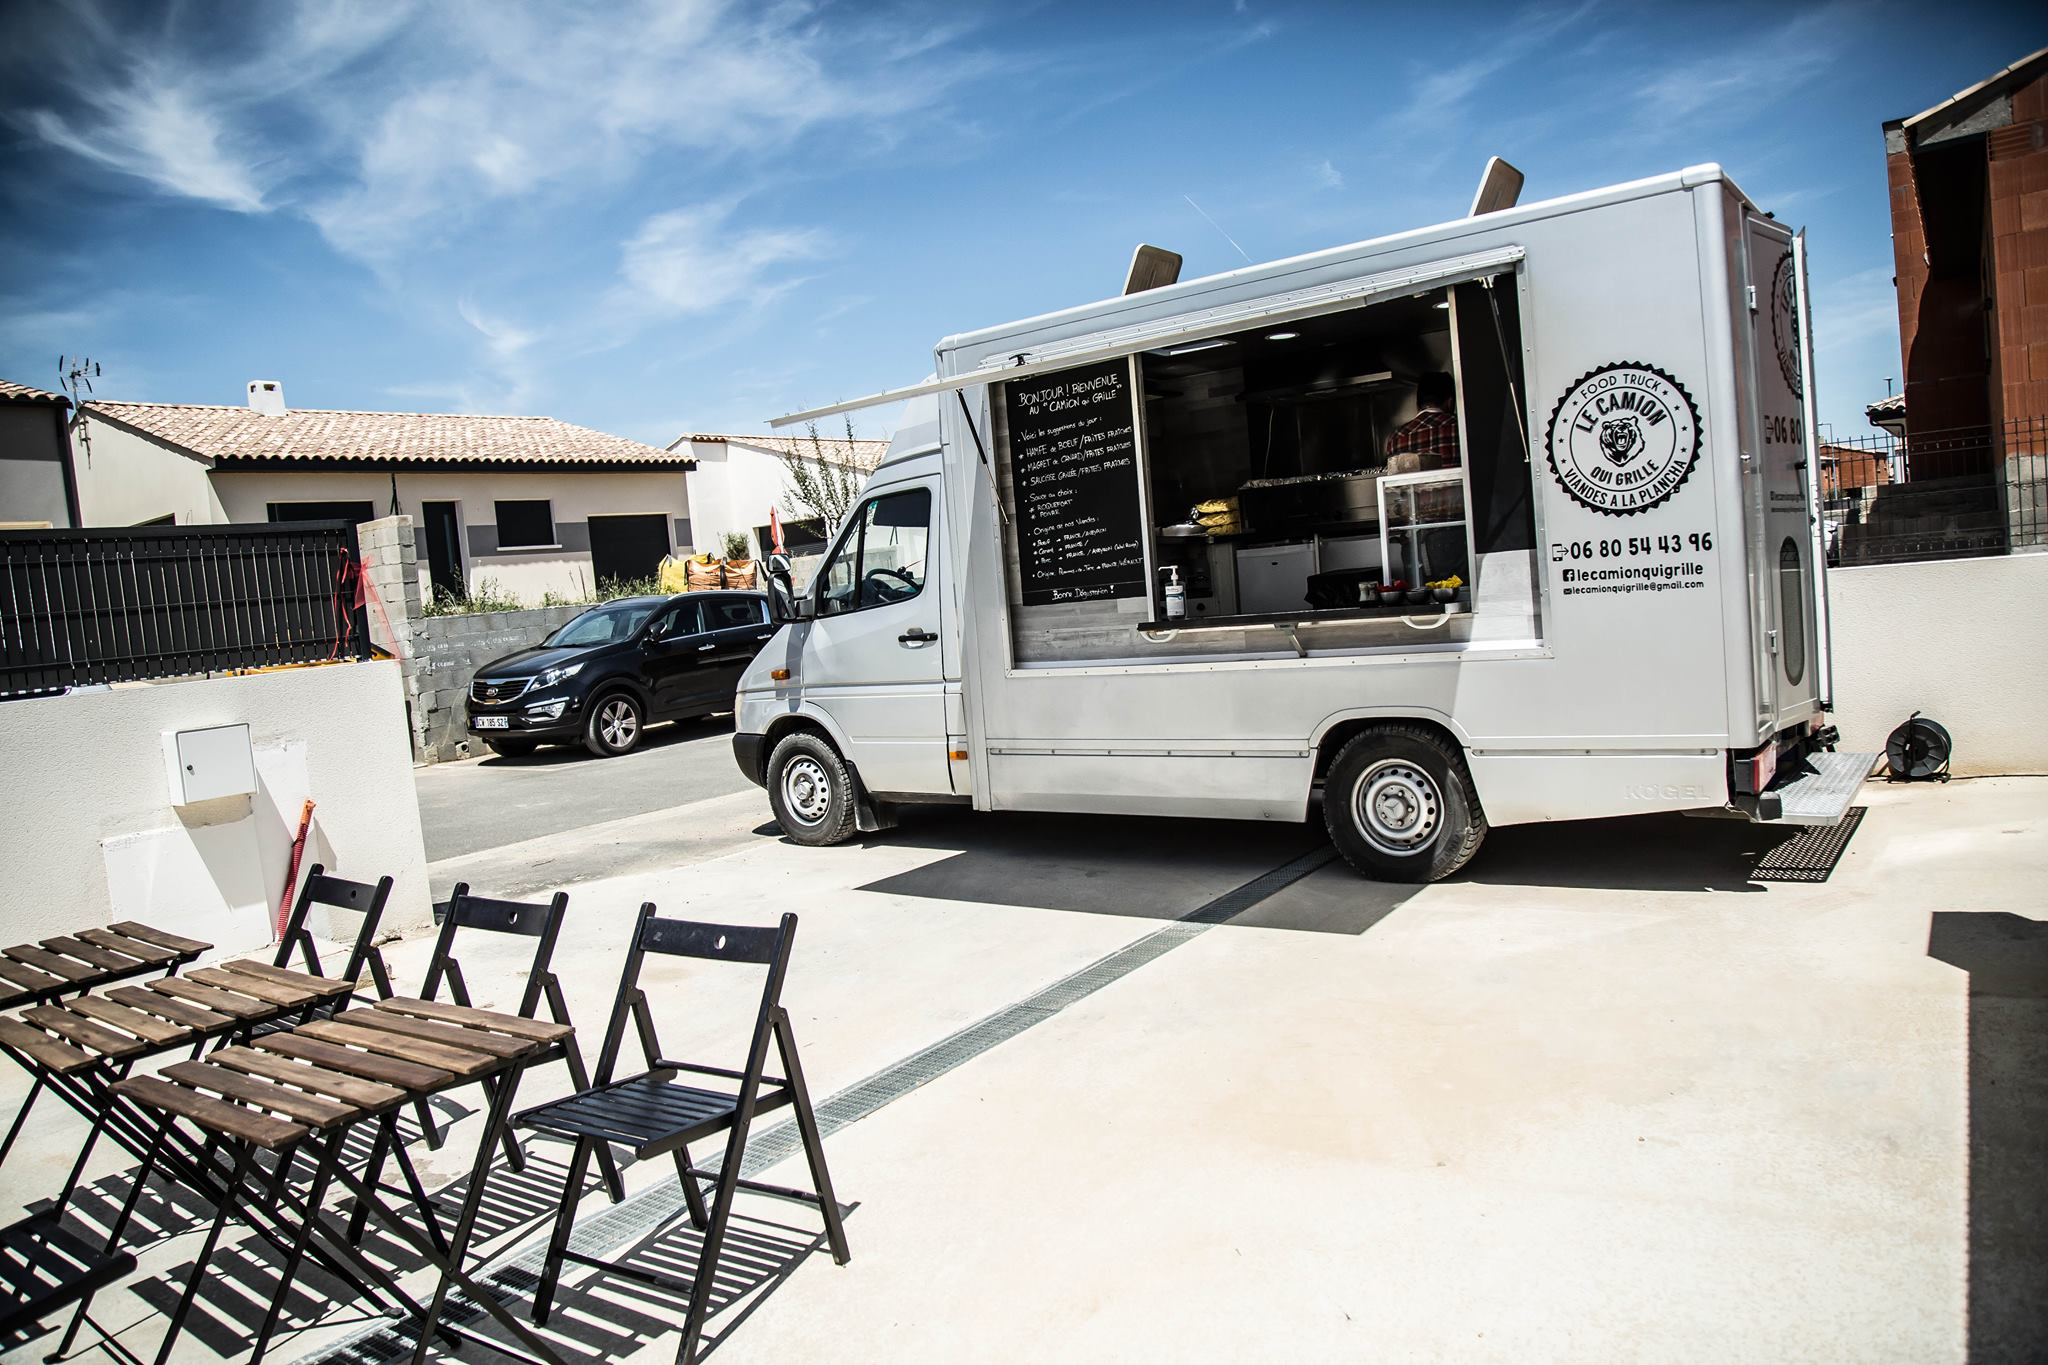 food truck le camion qui grille b ziers office de tourisme de b ziers m diterran e. Black Bedroom Furniture Sets. Home Design Ideas